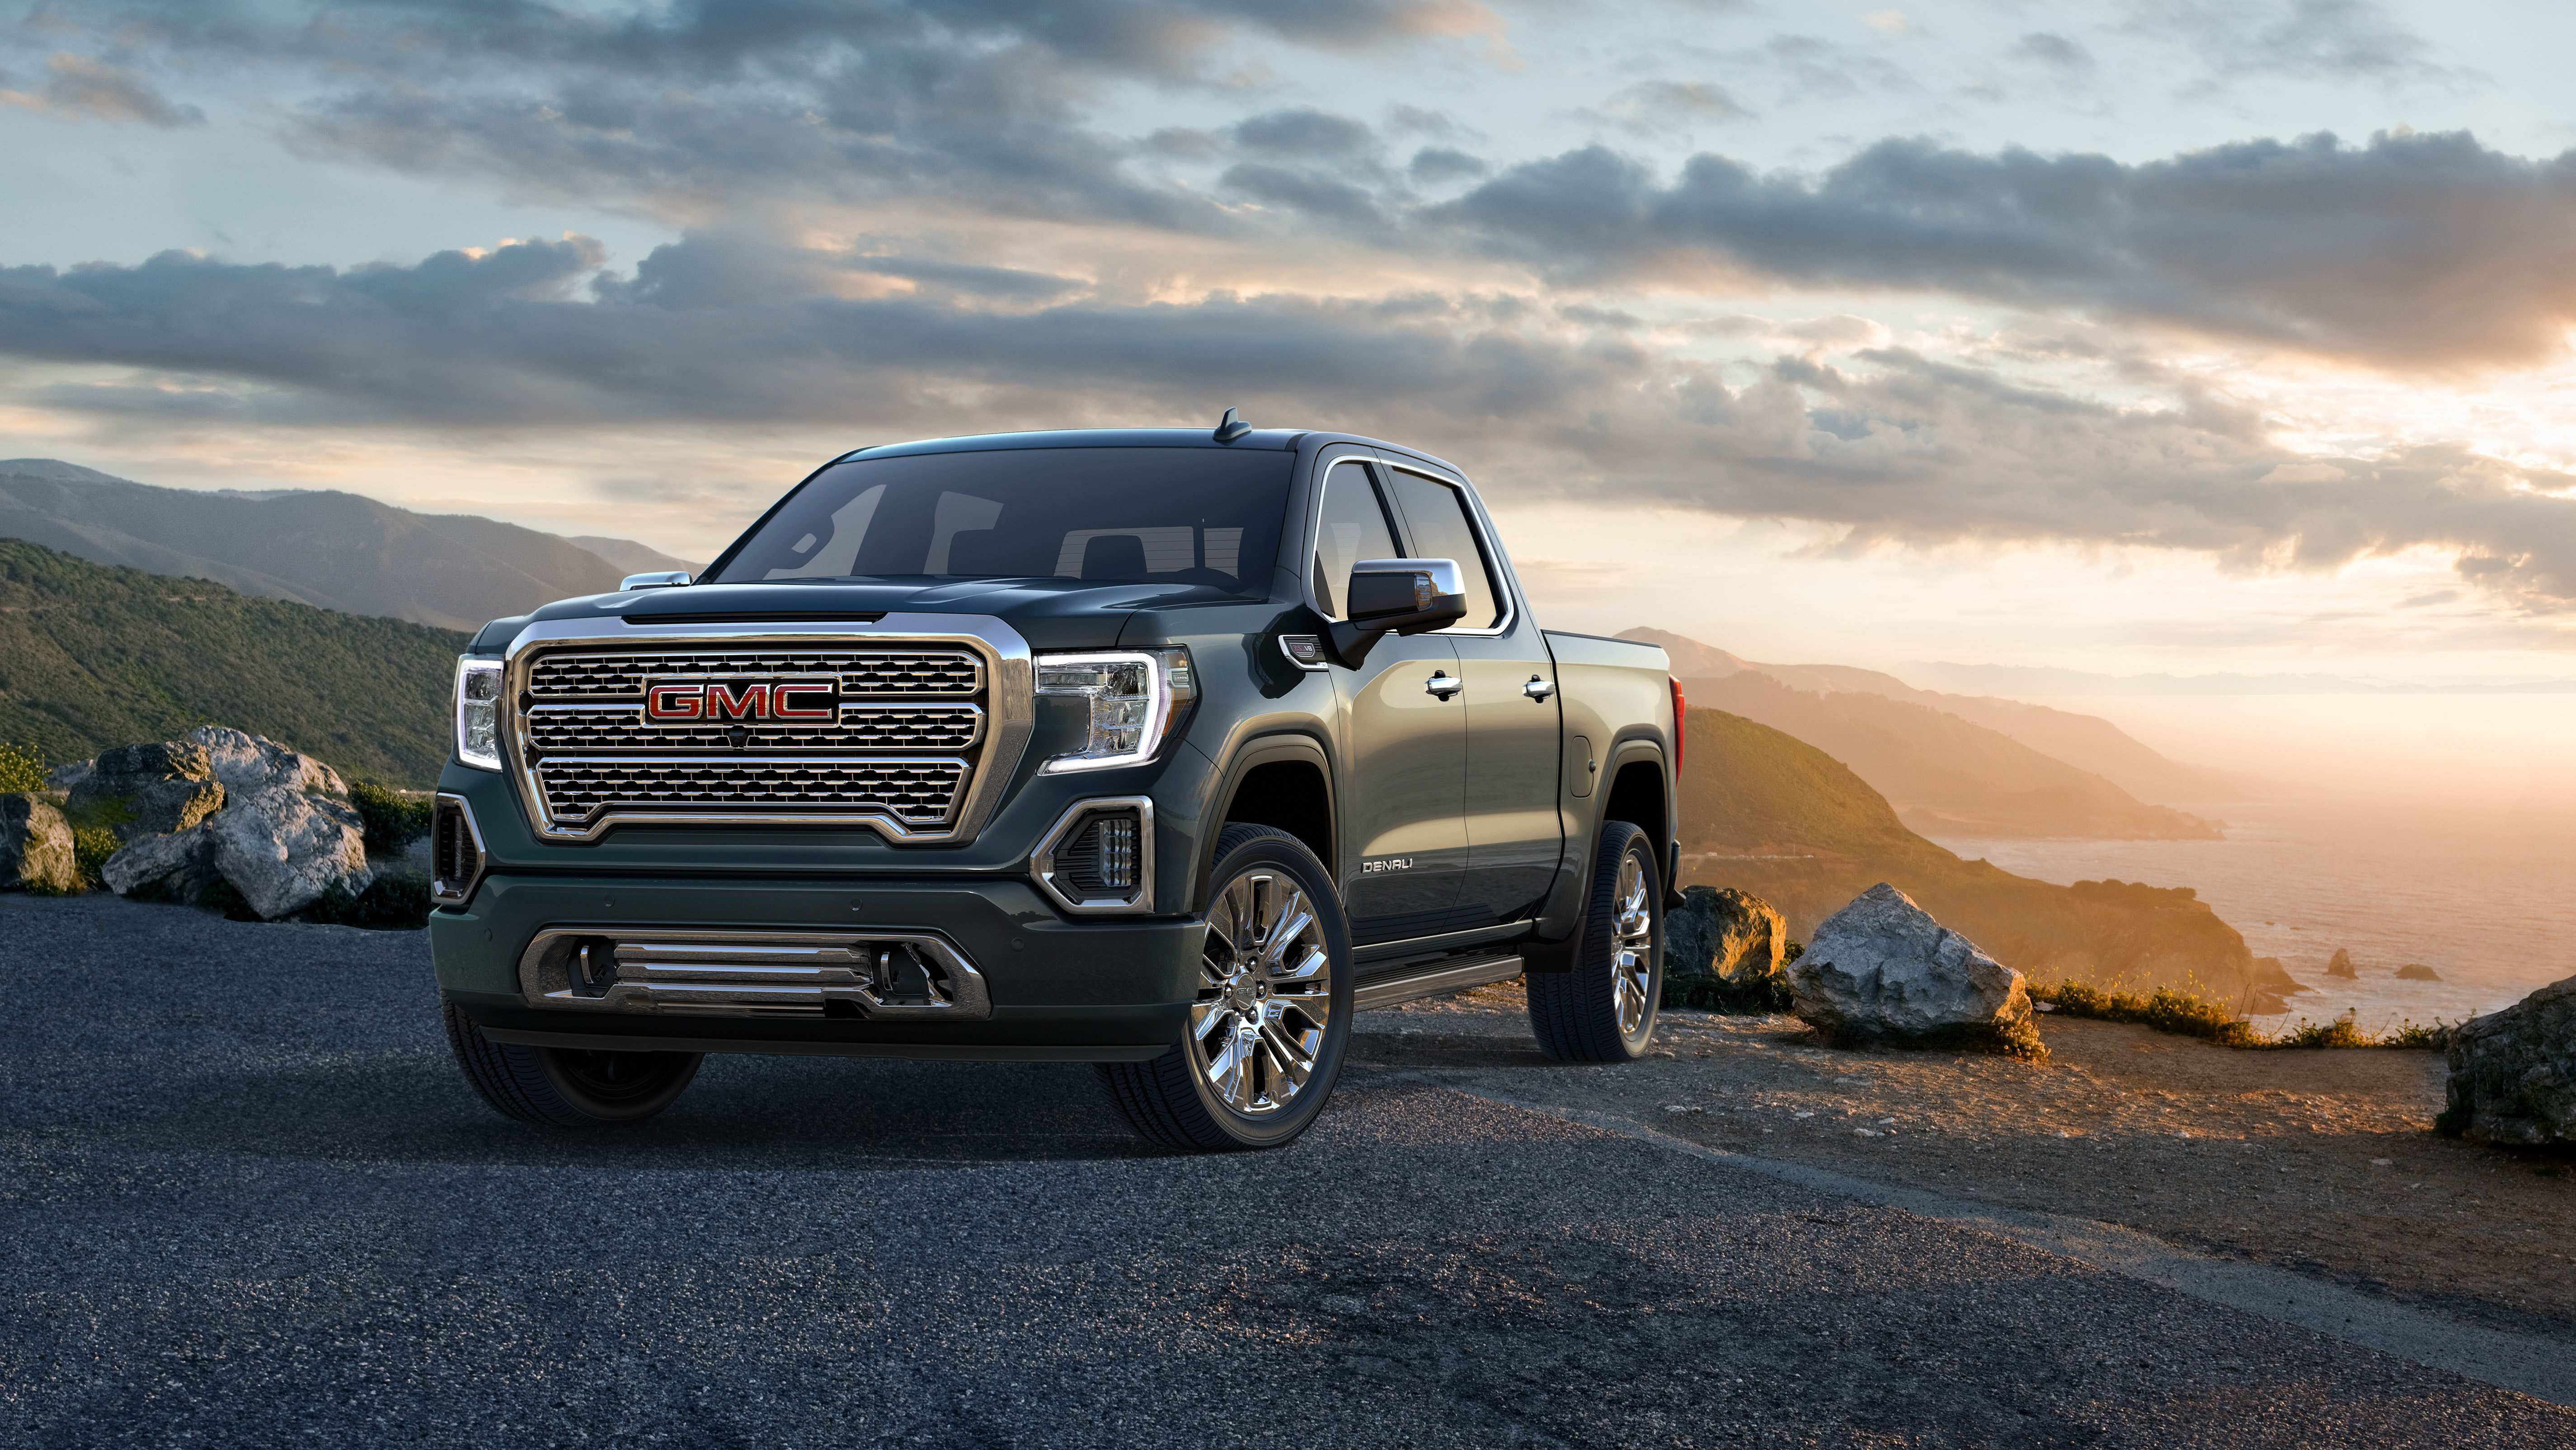 69 All New New 2019 Gmc Forum Engine Rumors for New 2019 Gmc Forum Engine